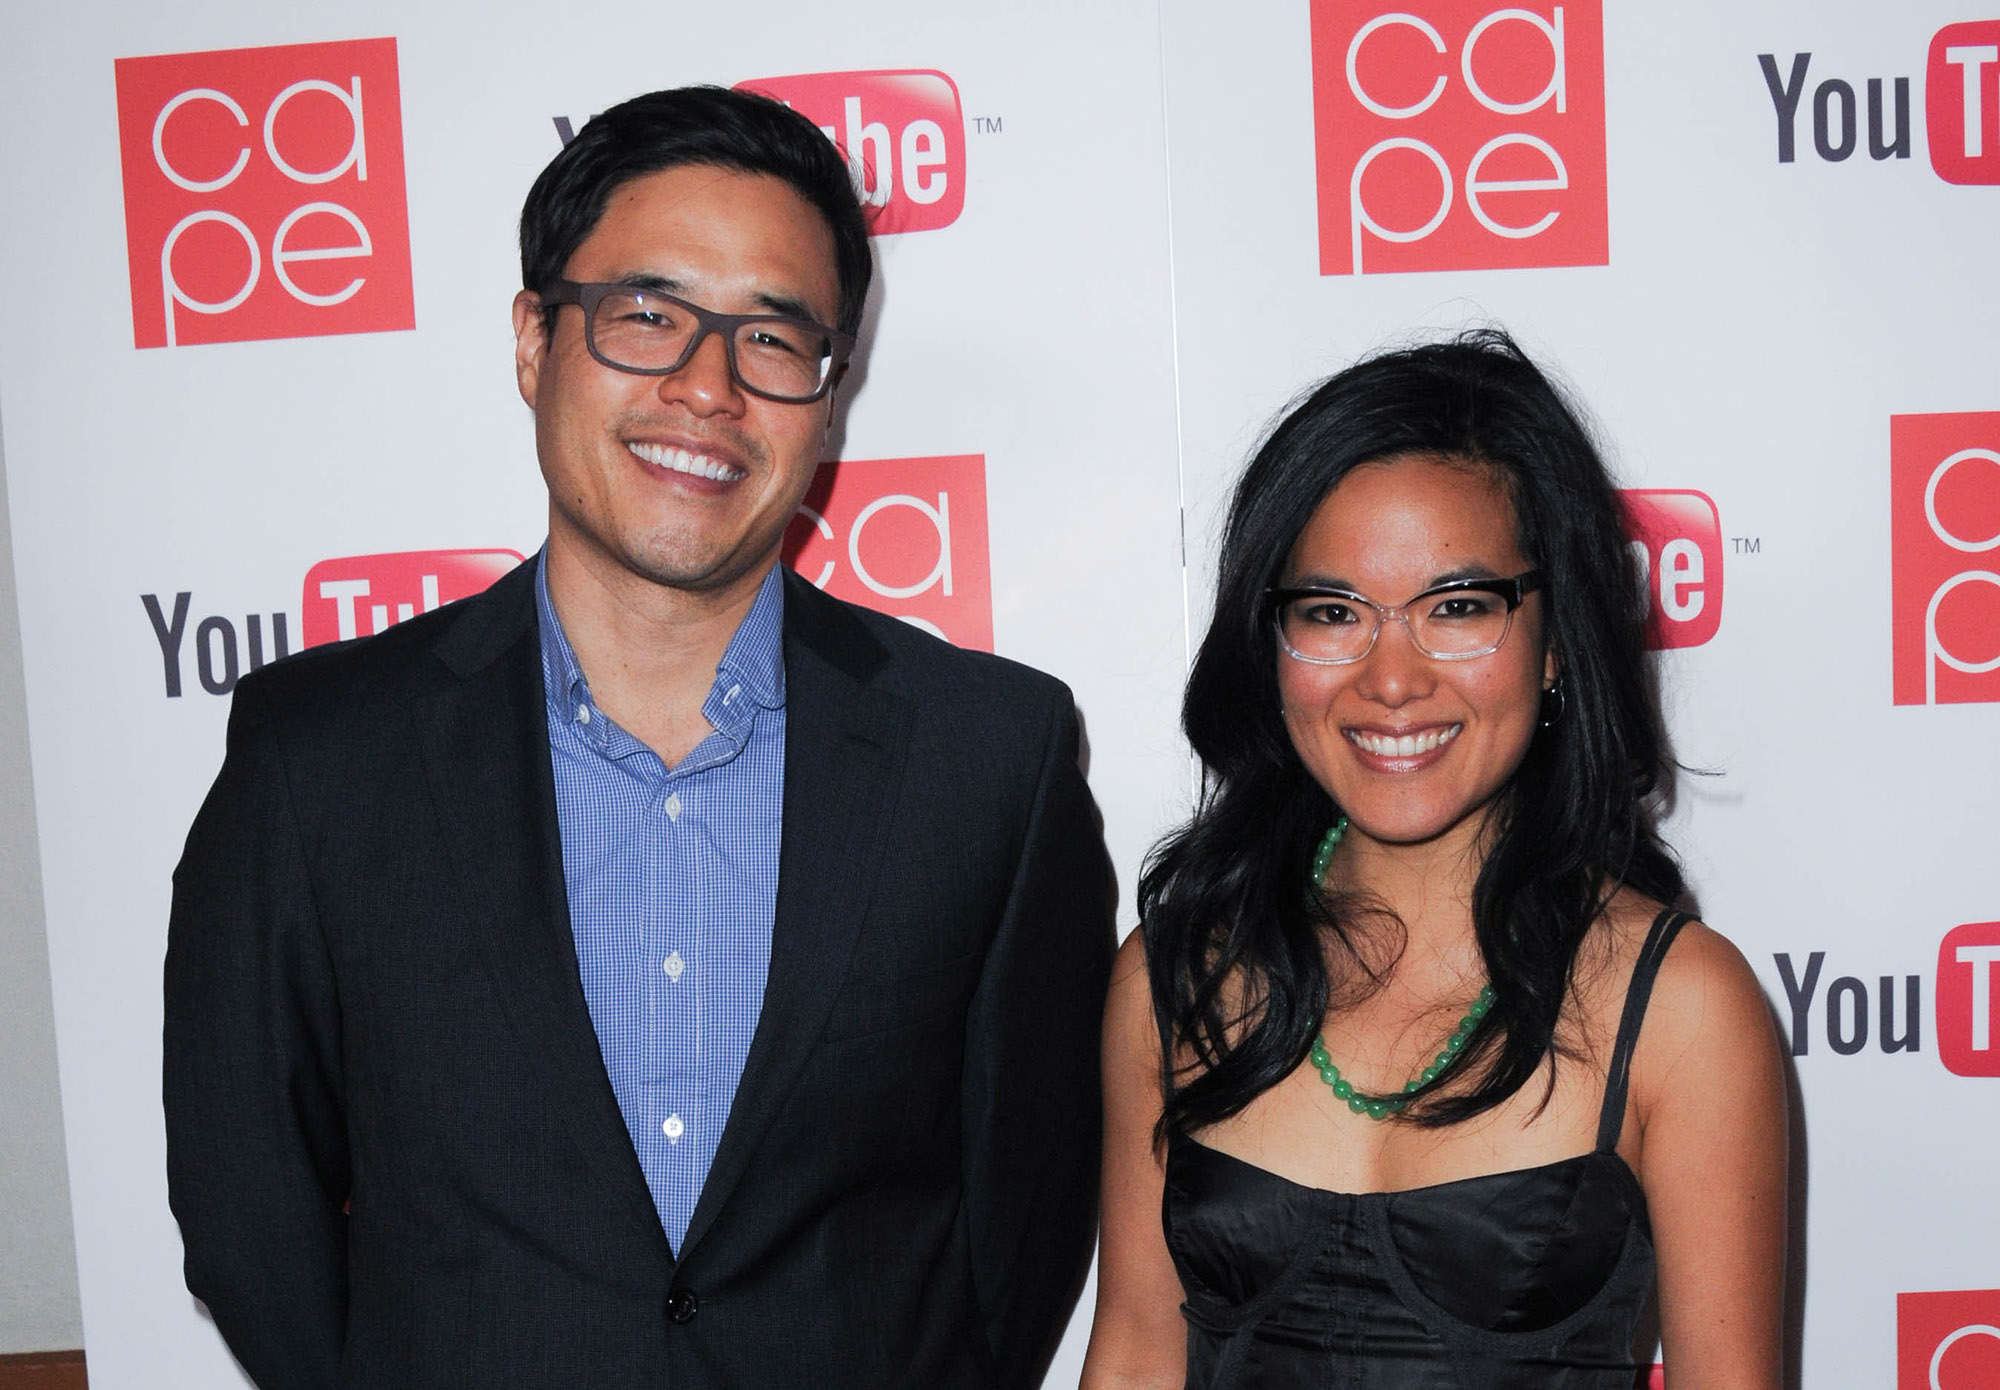 Randall Park and actress Ali Wong arrive for CAPE's 20th Anniversary Gala held at Union Station on November 12, 2011 in Los Angeles, California.  (Photo by Albert L. Ortega/Getty Images)